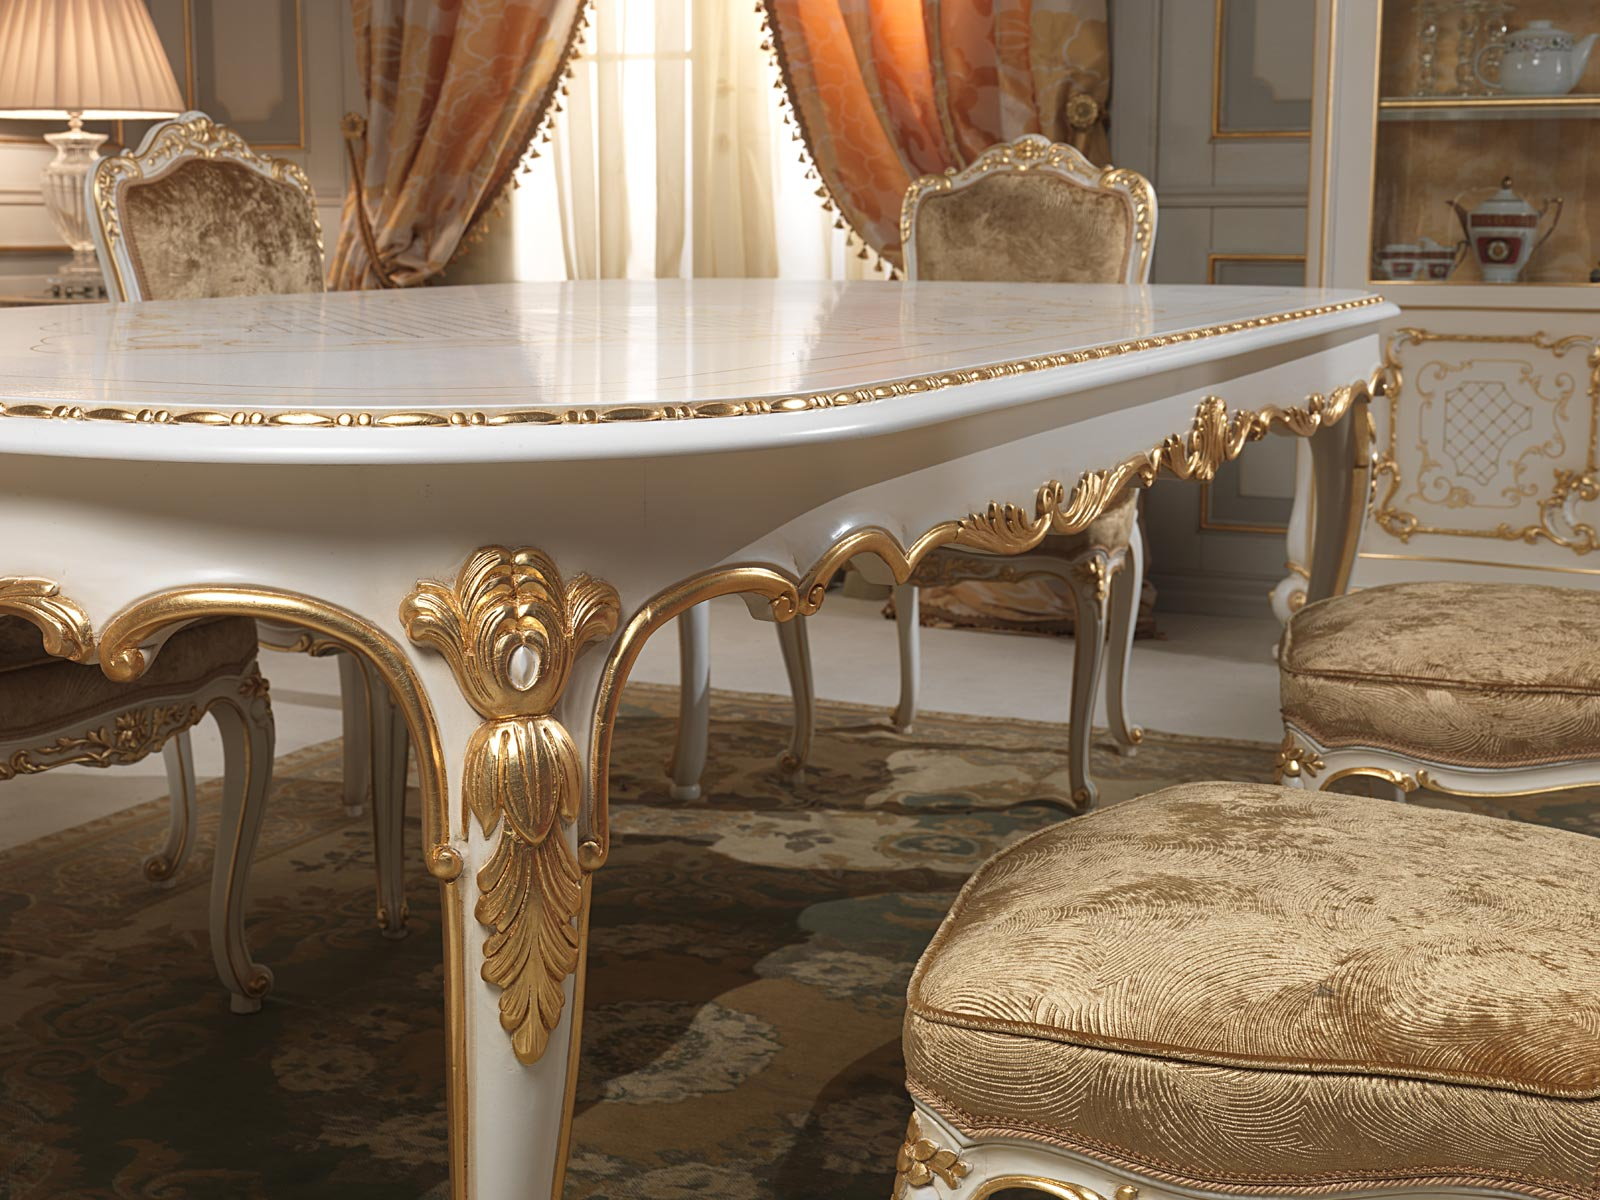 Dining Table In Louis Xv Style Particular Of The Carvings